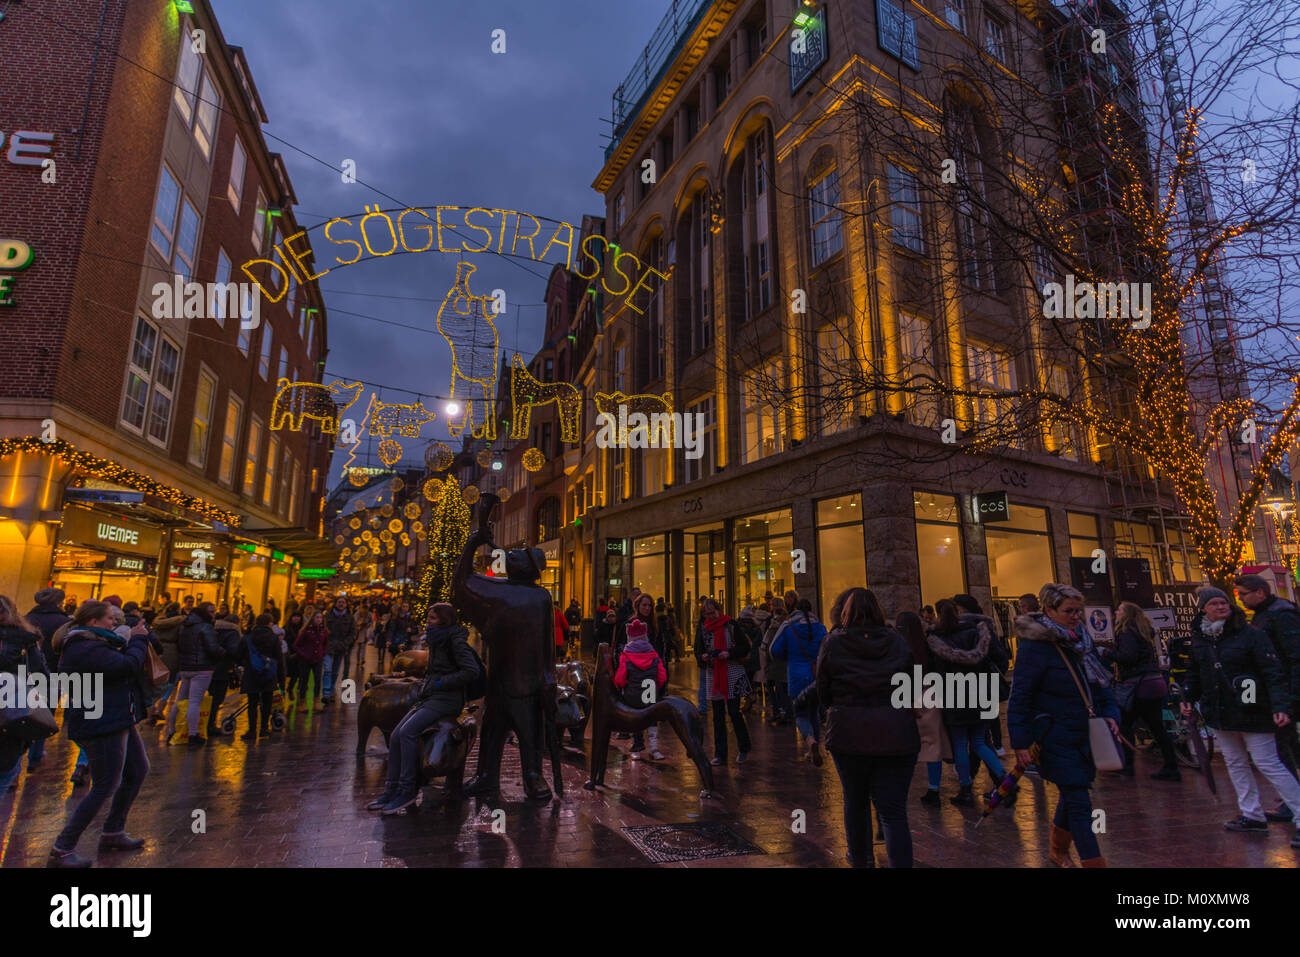 bremen germany christmas stock photos bremen germany christmas stock images alamy. Black Bedroom Furniture Sets. Home Design Ideas